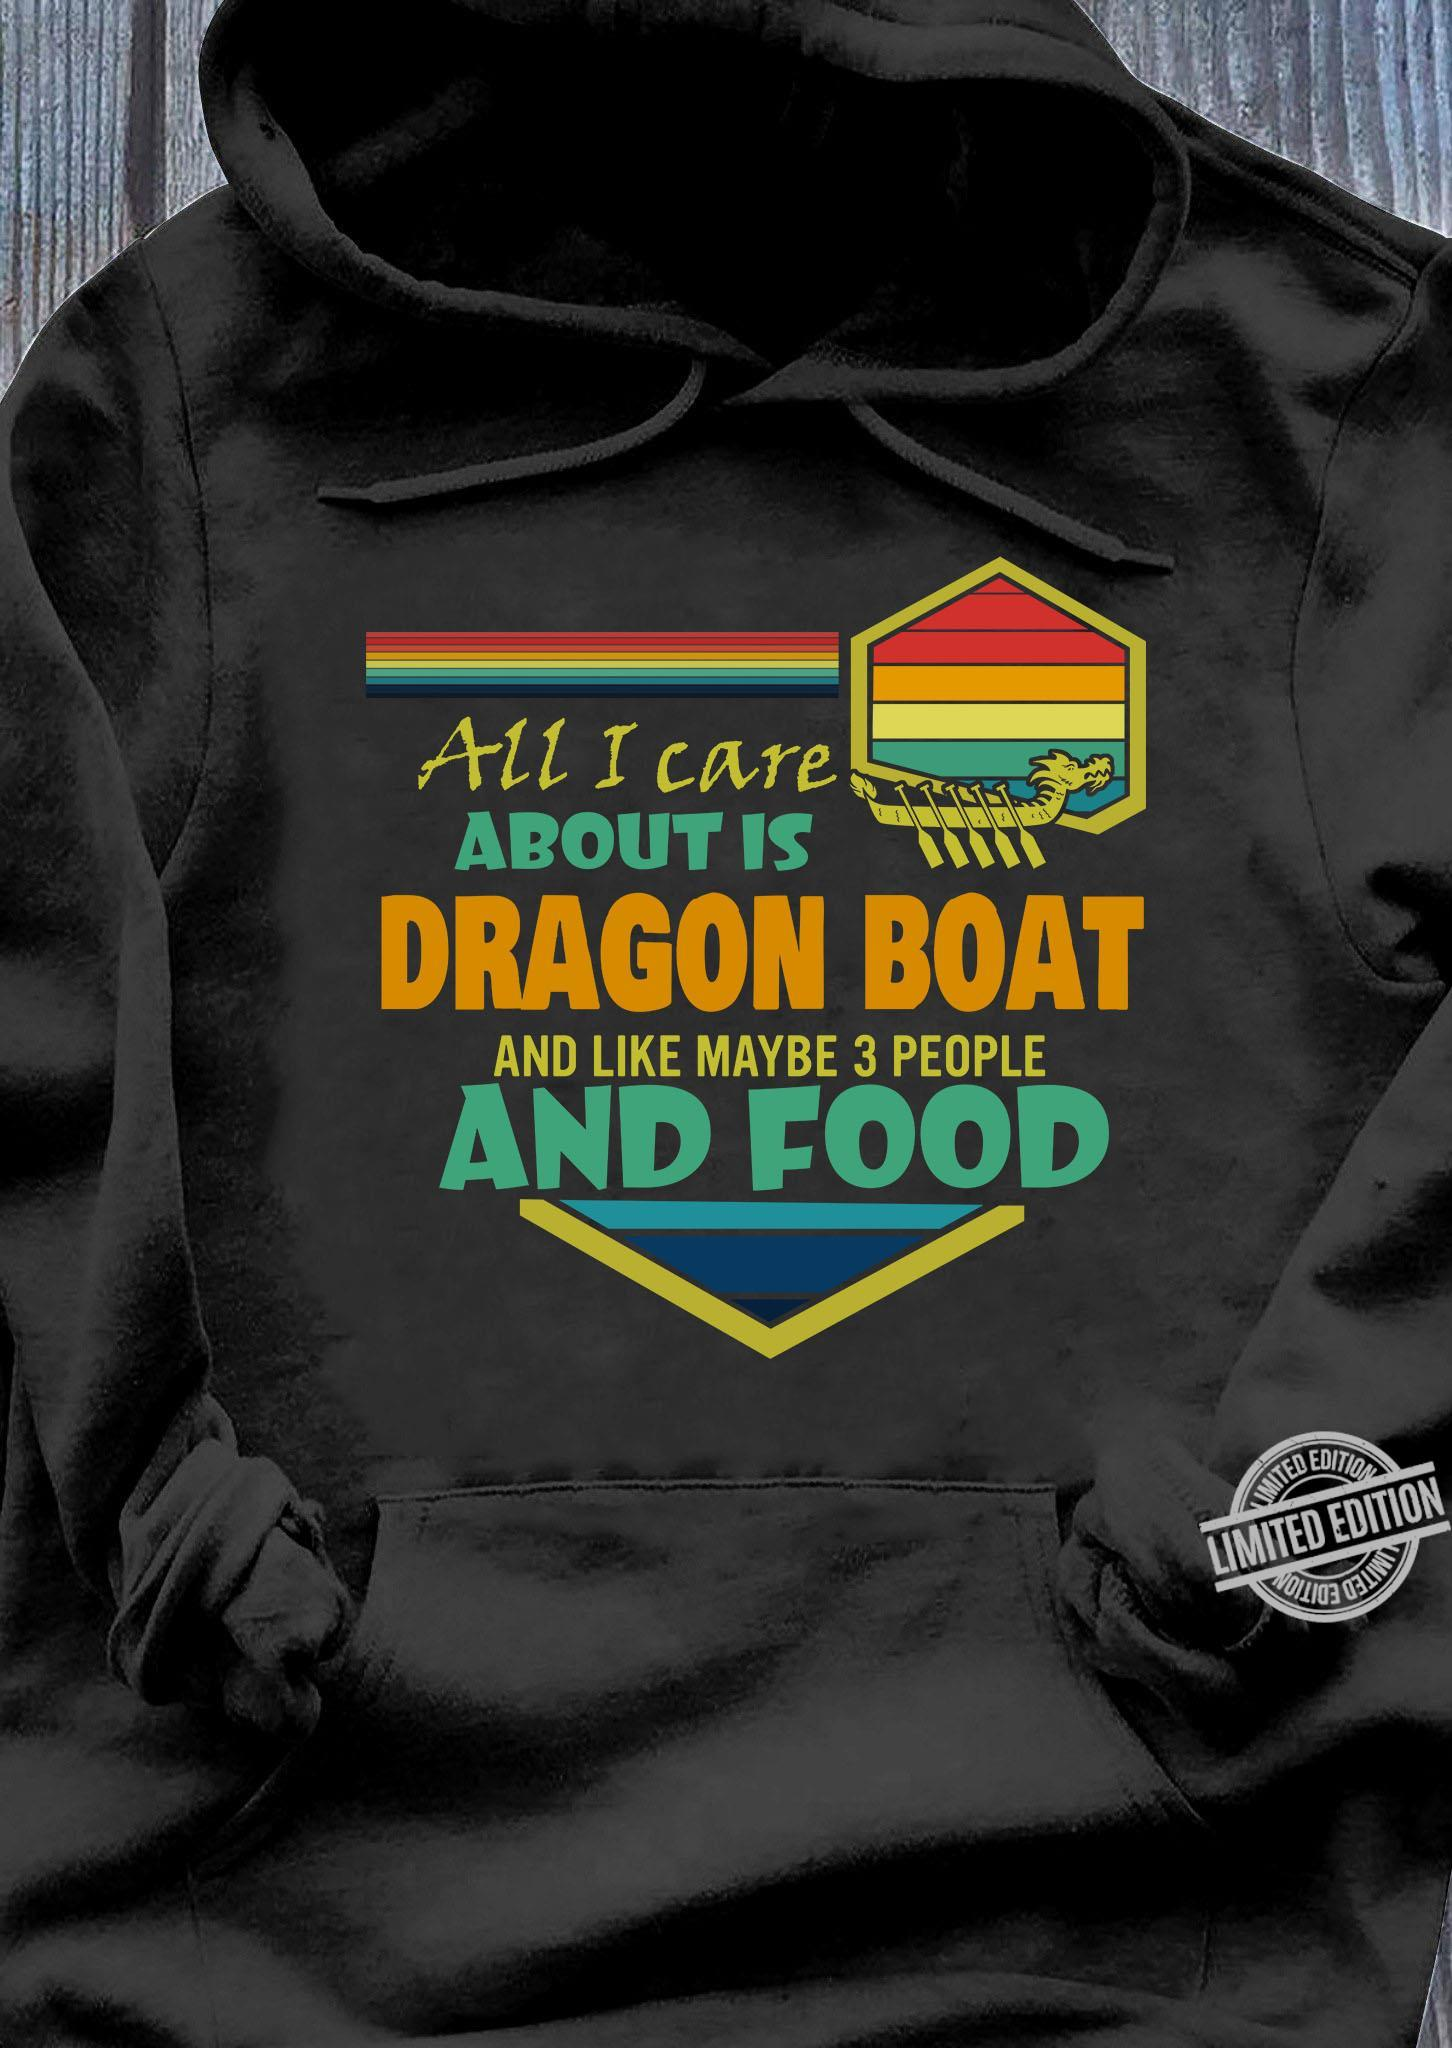 All I Care About Is Gragon Boat And Like Maybe 3 People And Food Shirt